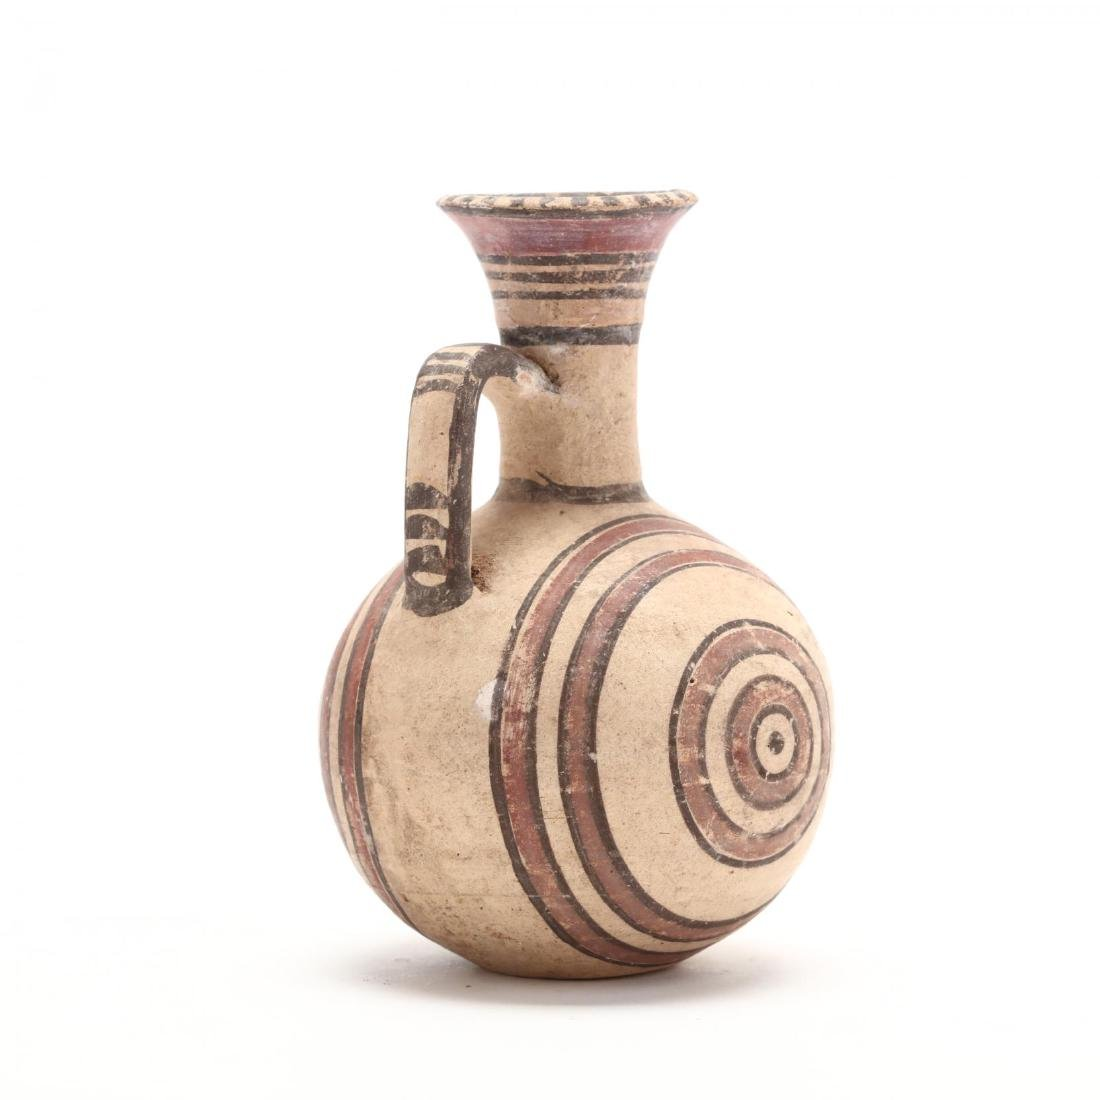 Cypro-Archaic Barrel Flask - 5